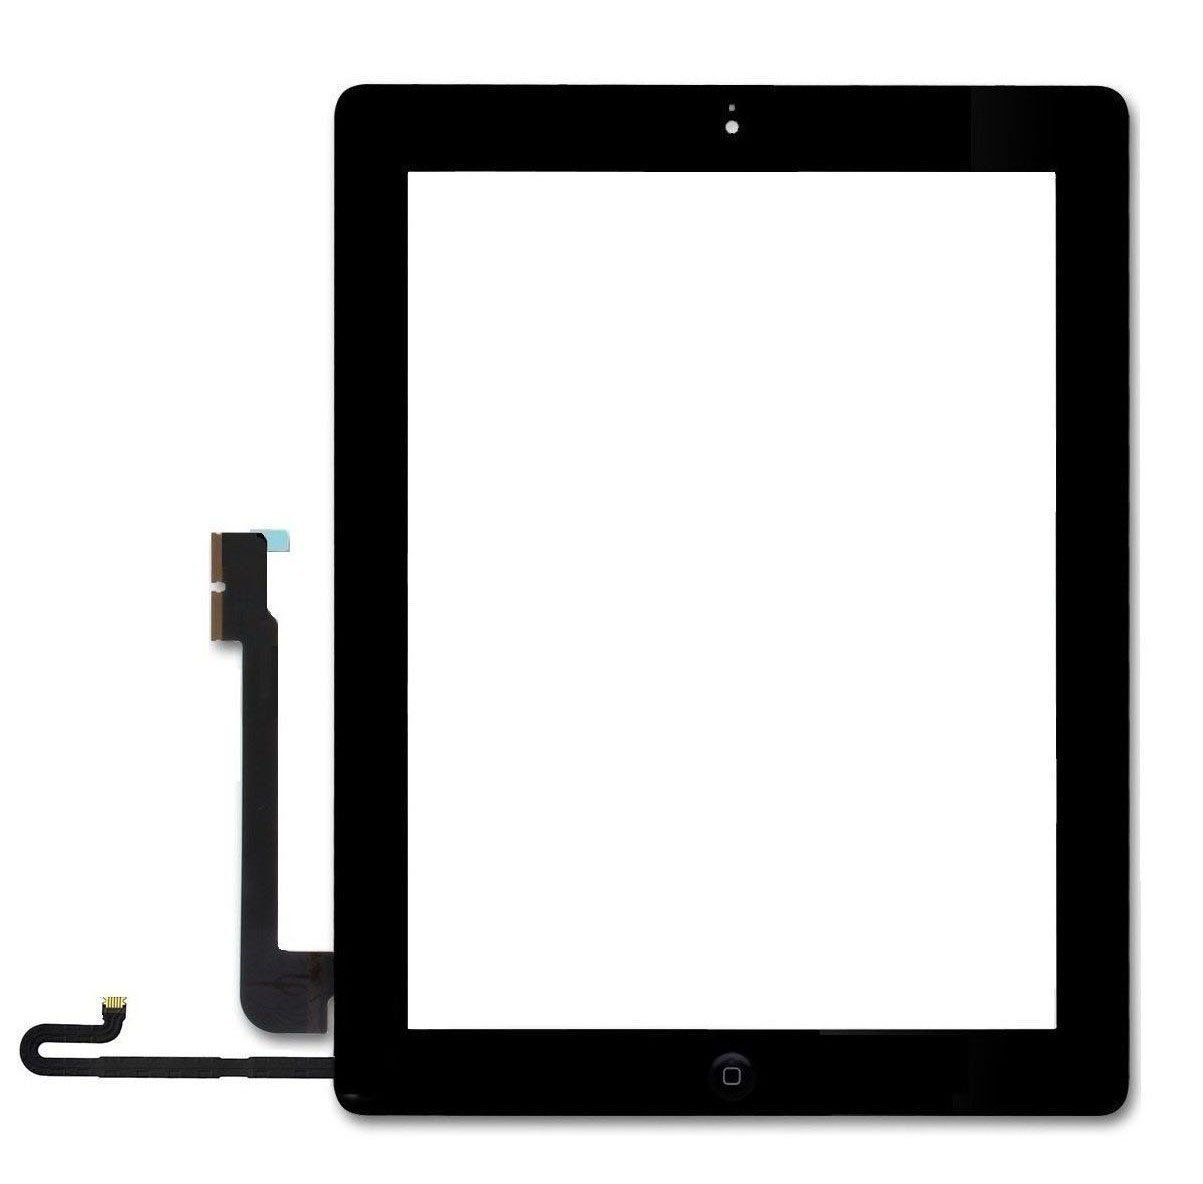 iPad 4 Glass & Touch Digitizer Replacement - Black - Original Quality